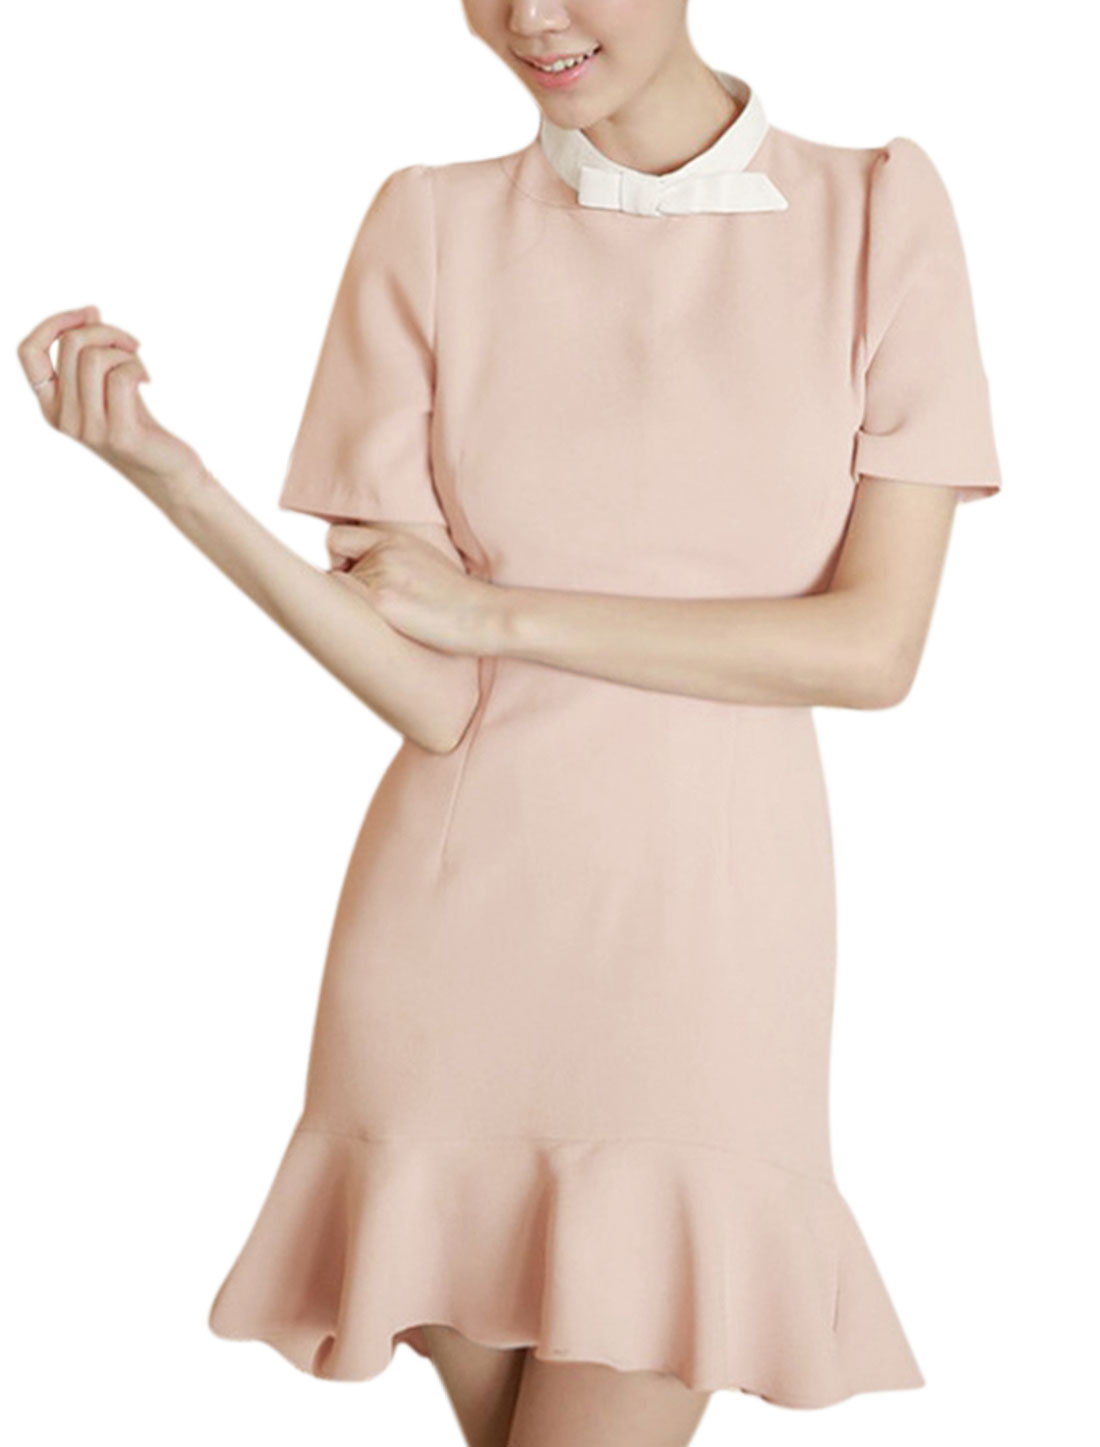 Lady Mock Neck Short Sleeve Hidden Zipper Slim Fit Sheath Dress Pale Pink S